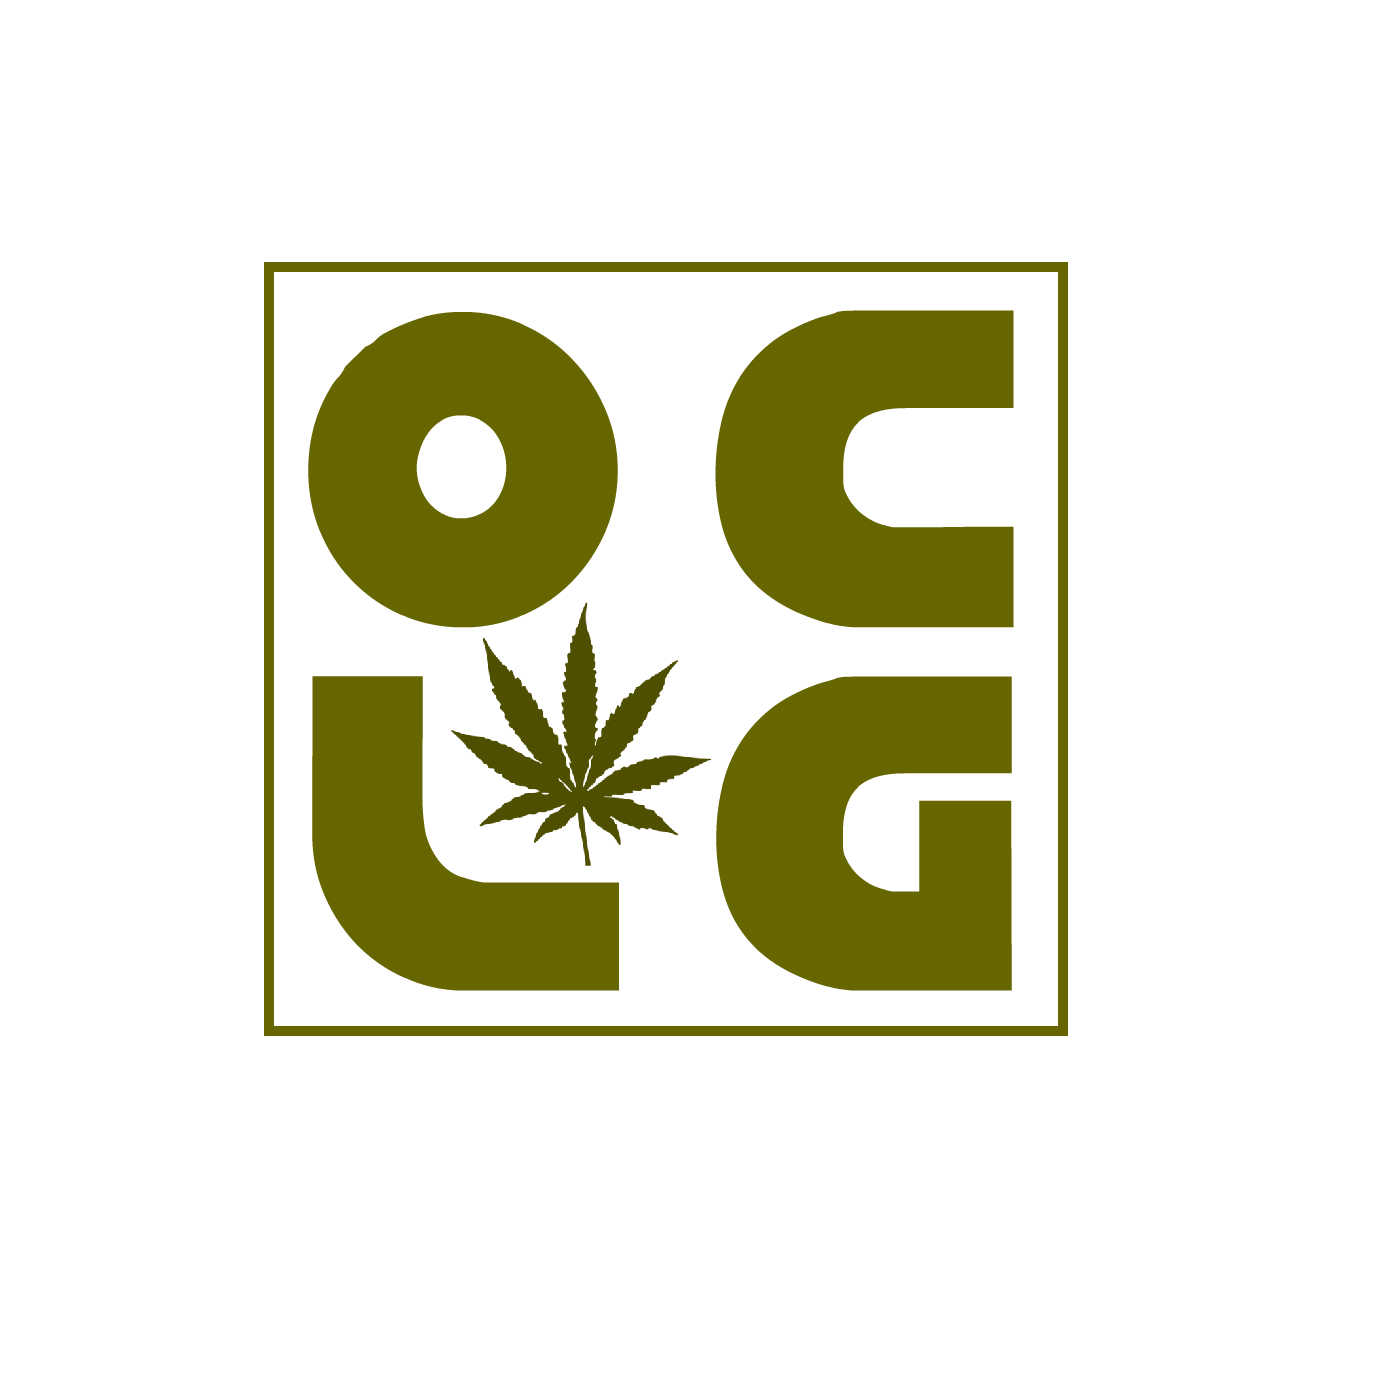 Intro to the HB 3460 Regulations MMJ Dispensaries in Oregon